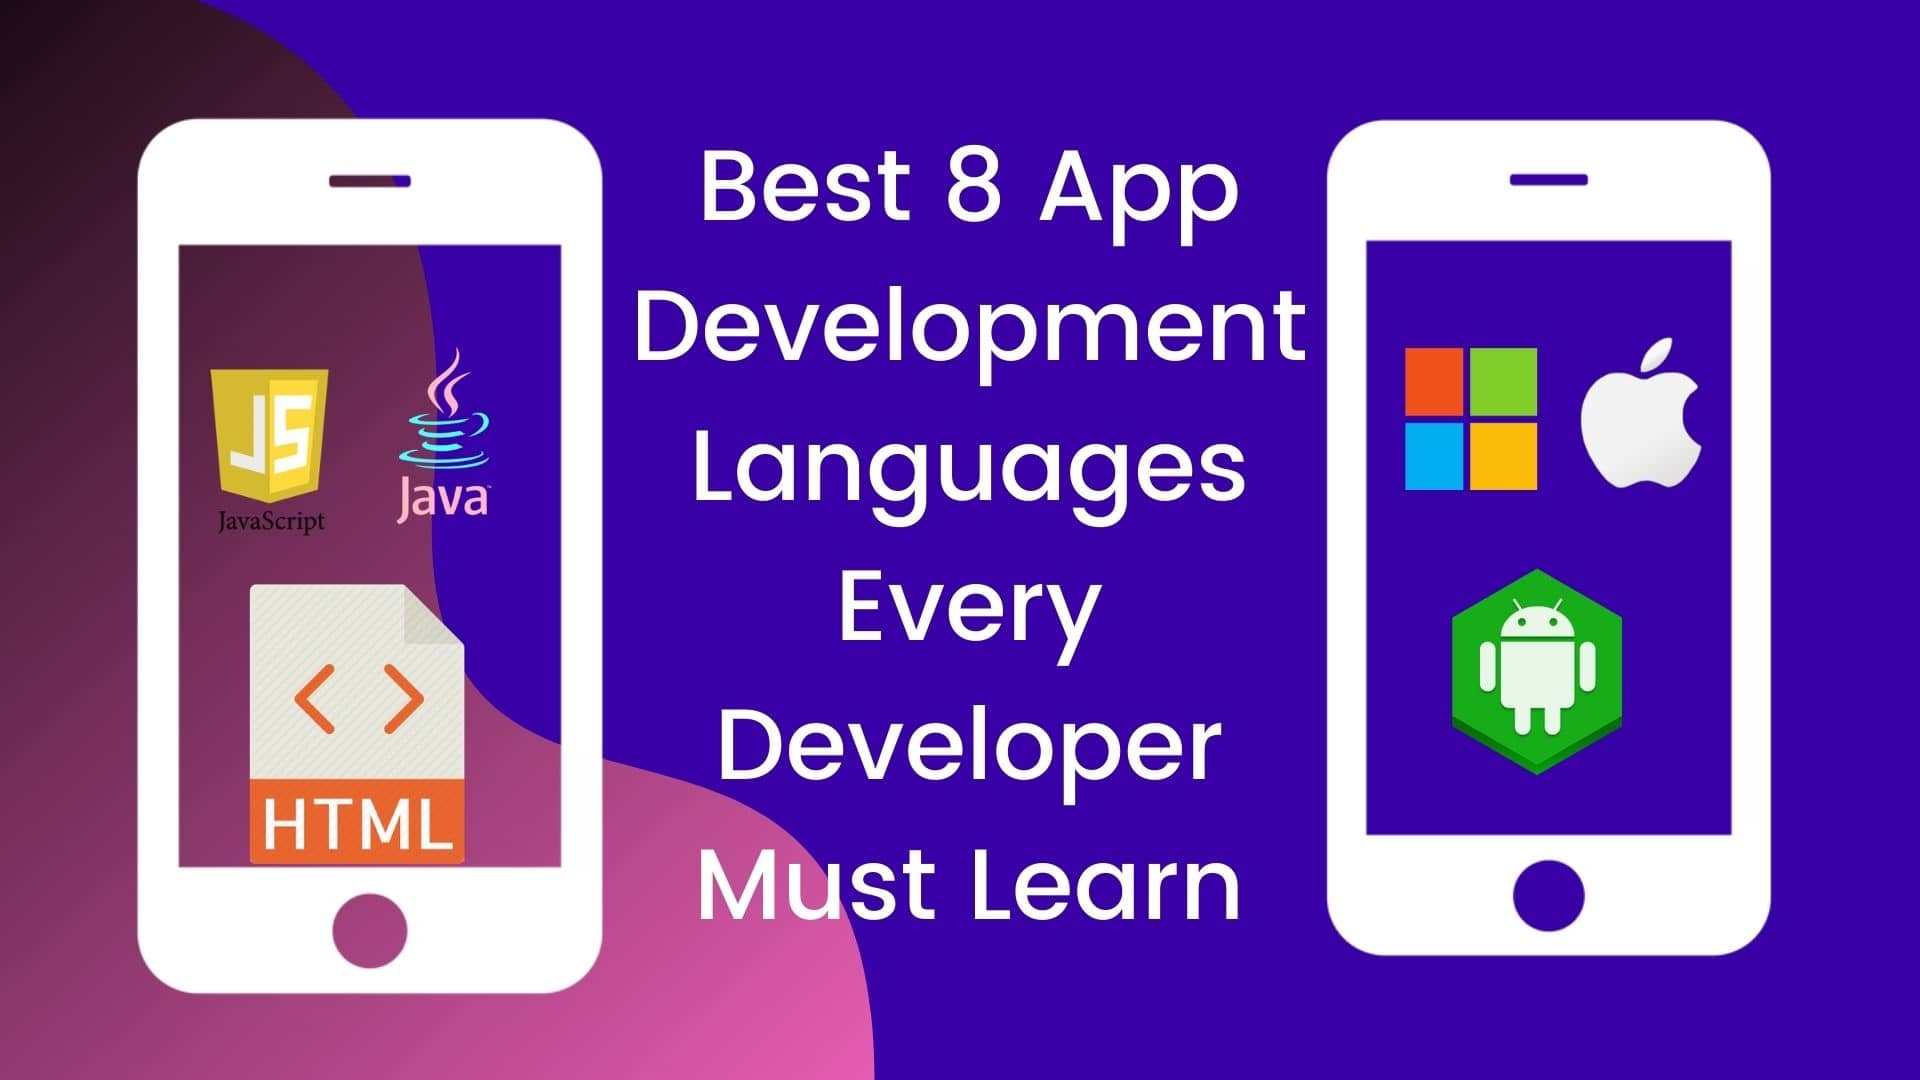 App Development Languages Every Developer Must Learn